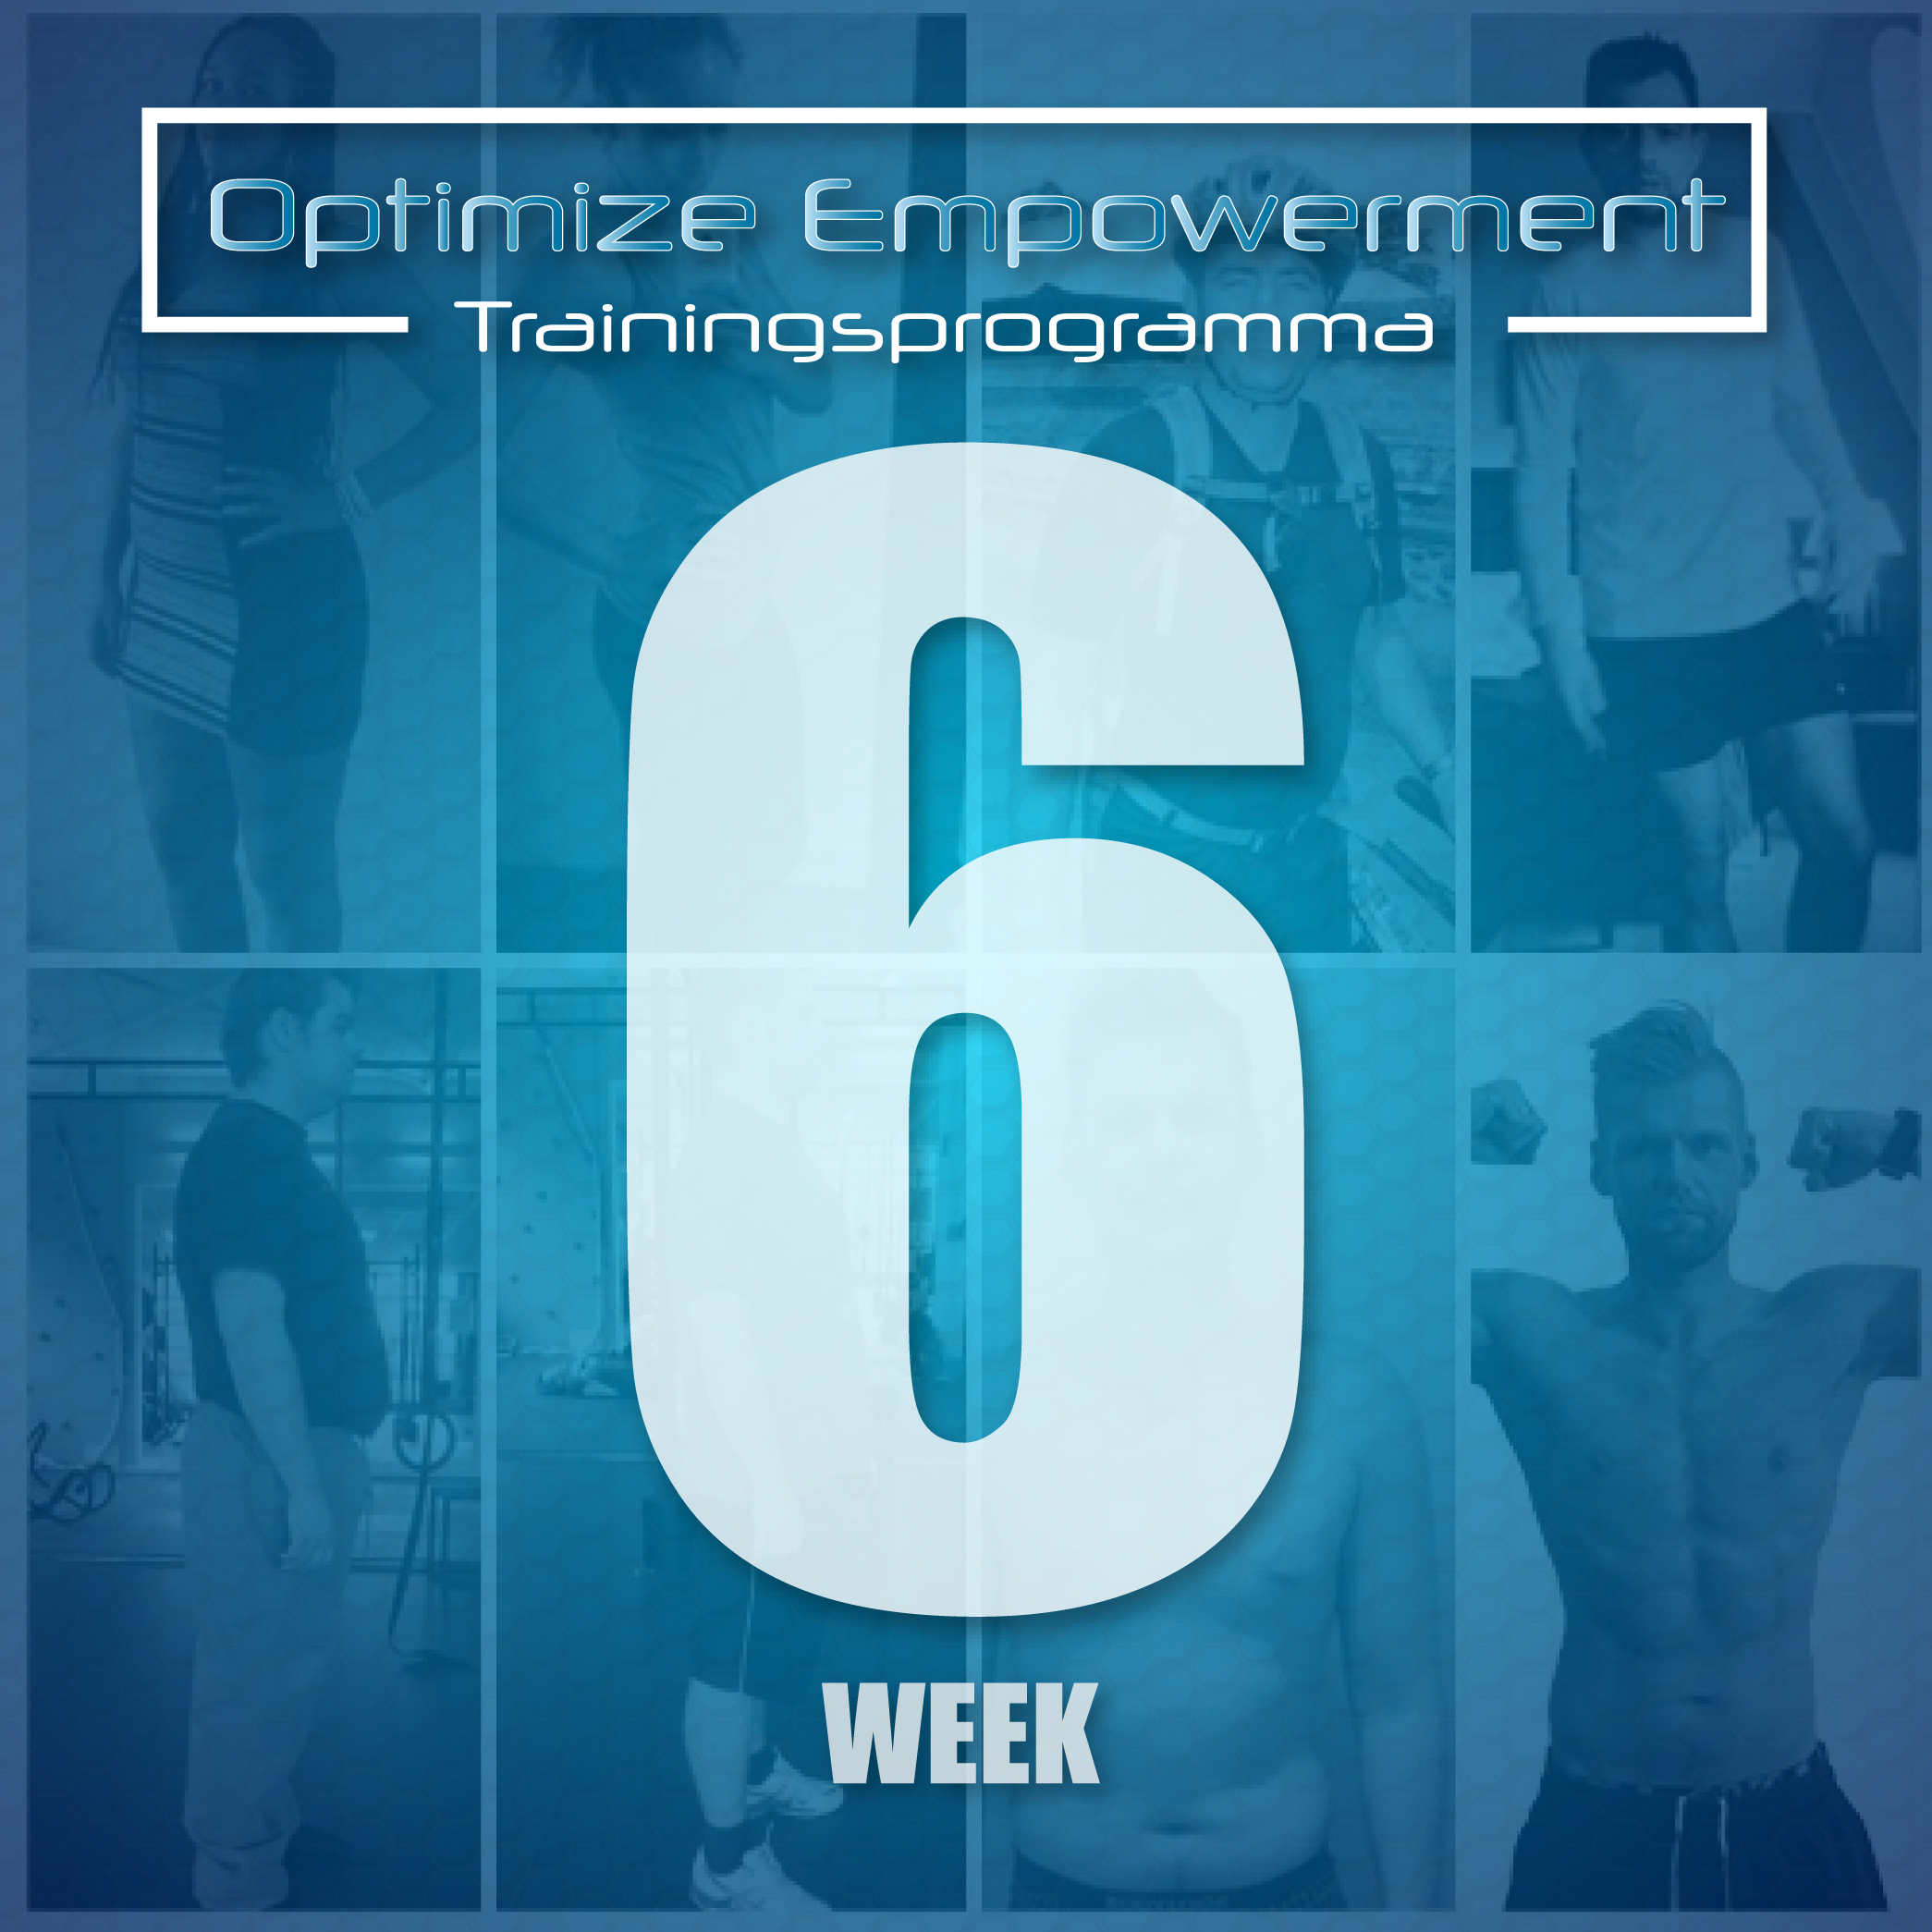 Optimize Empowerment week 6